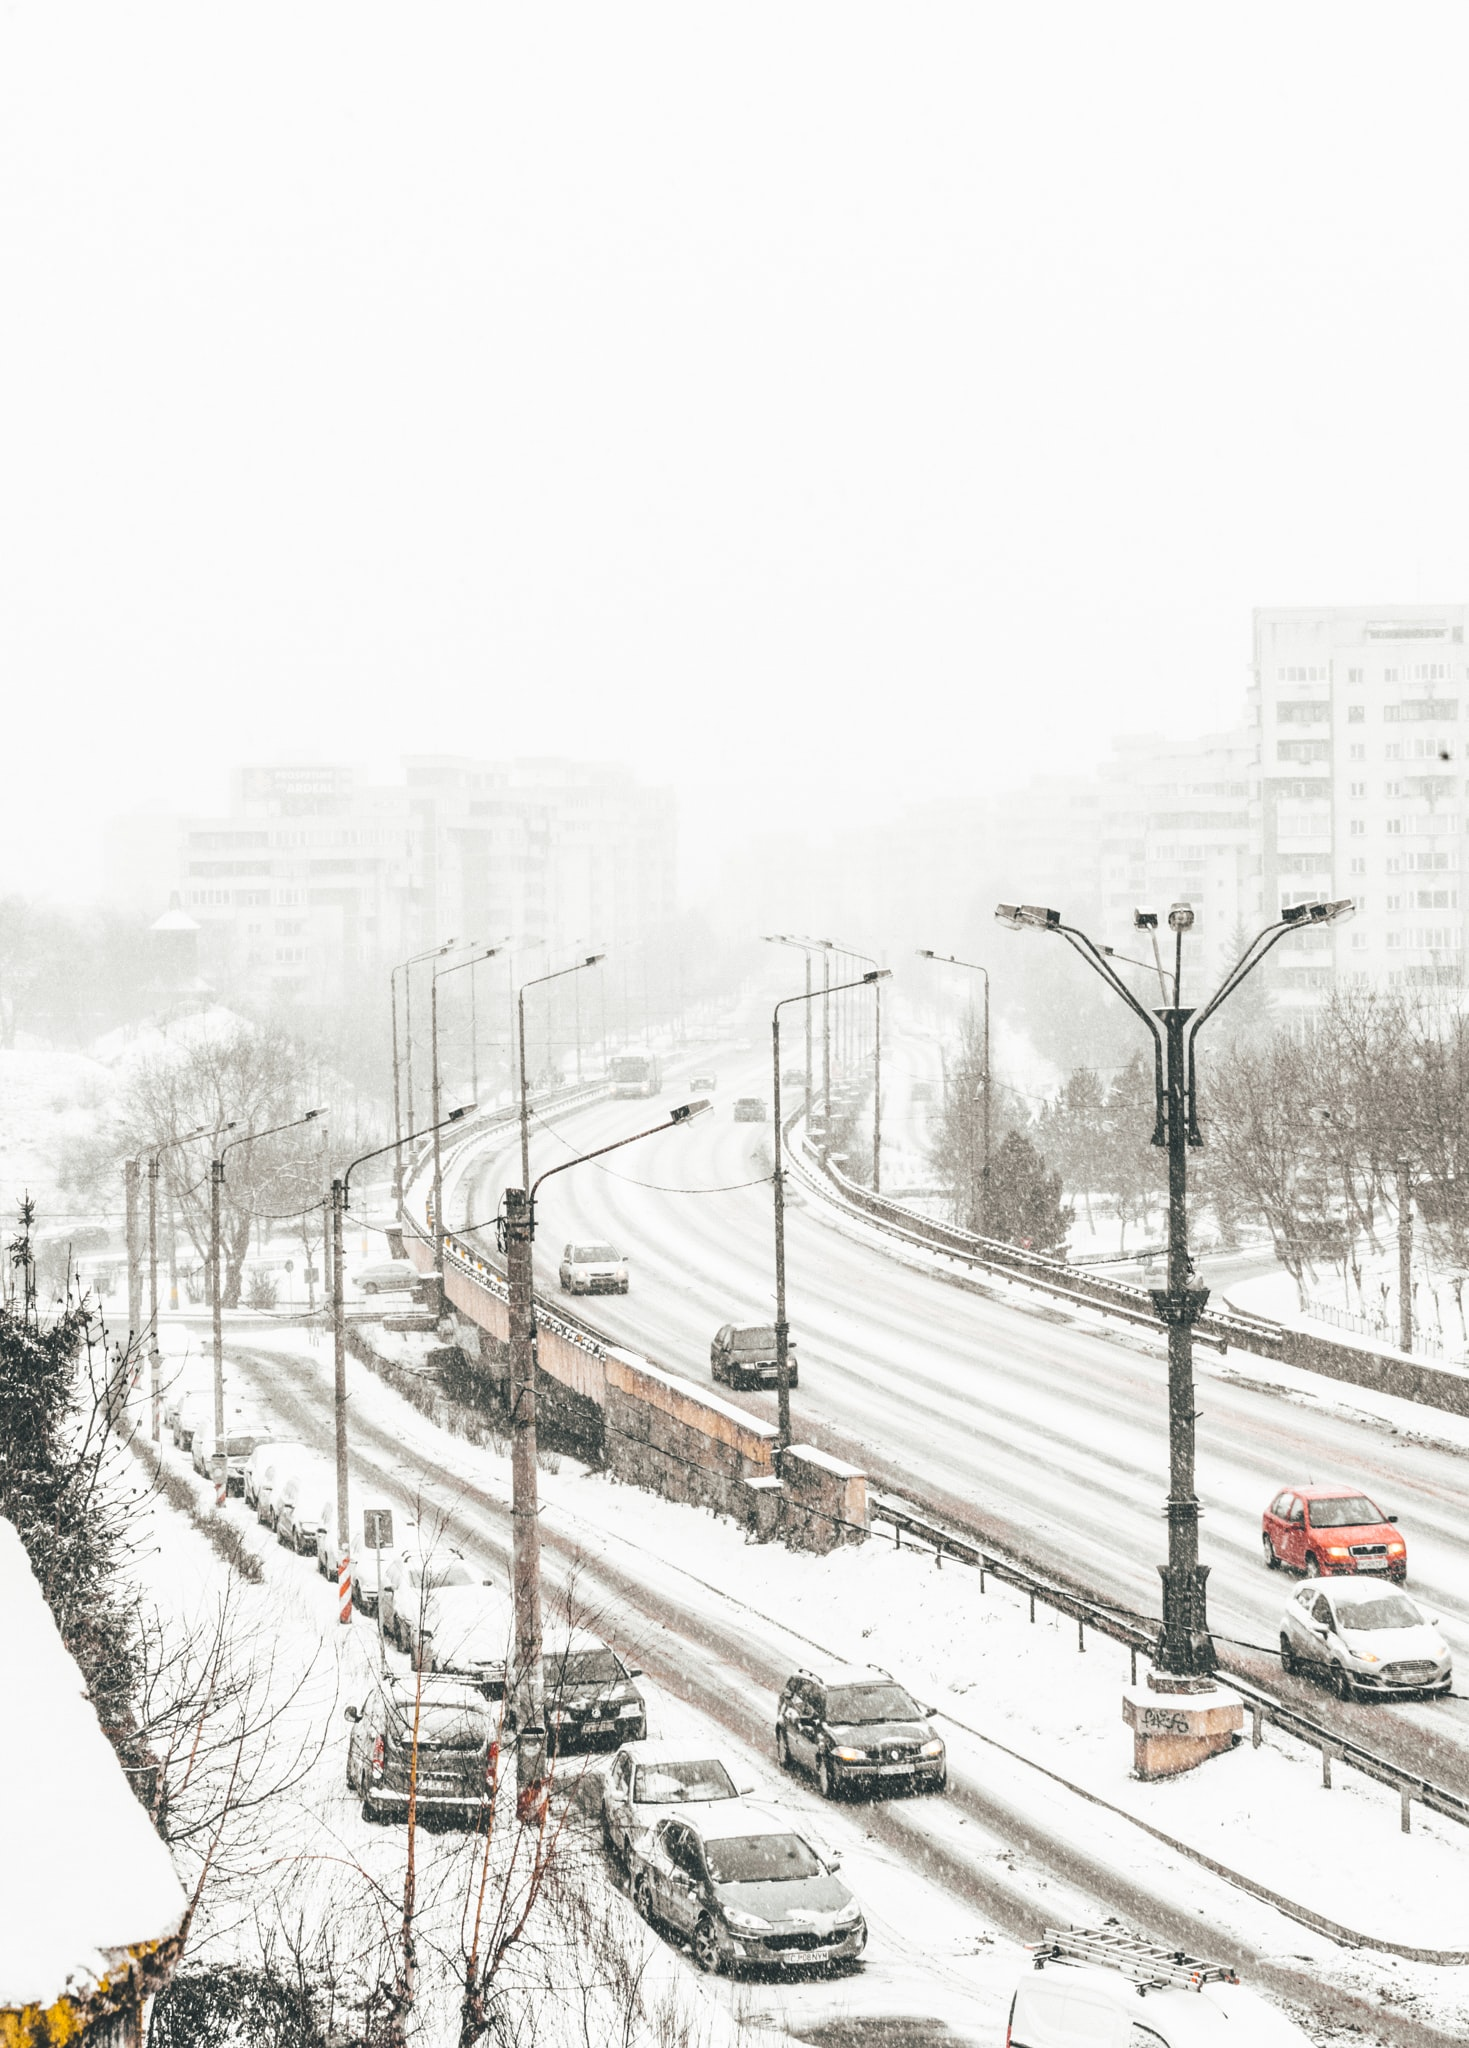 aerial view of road coated snow with vehicle passes